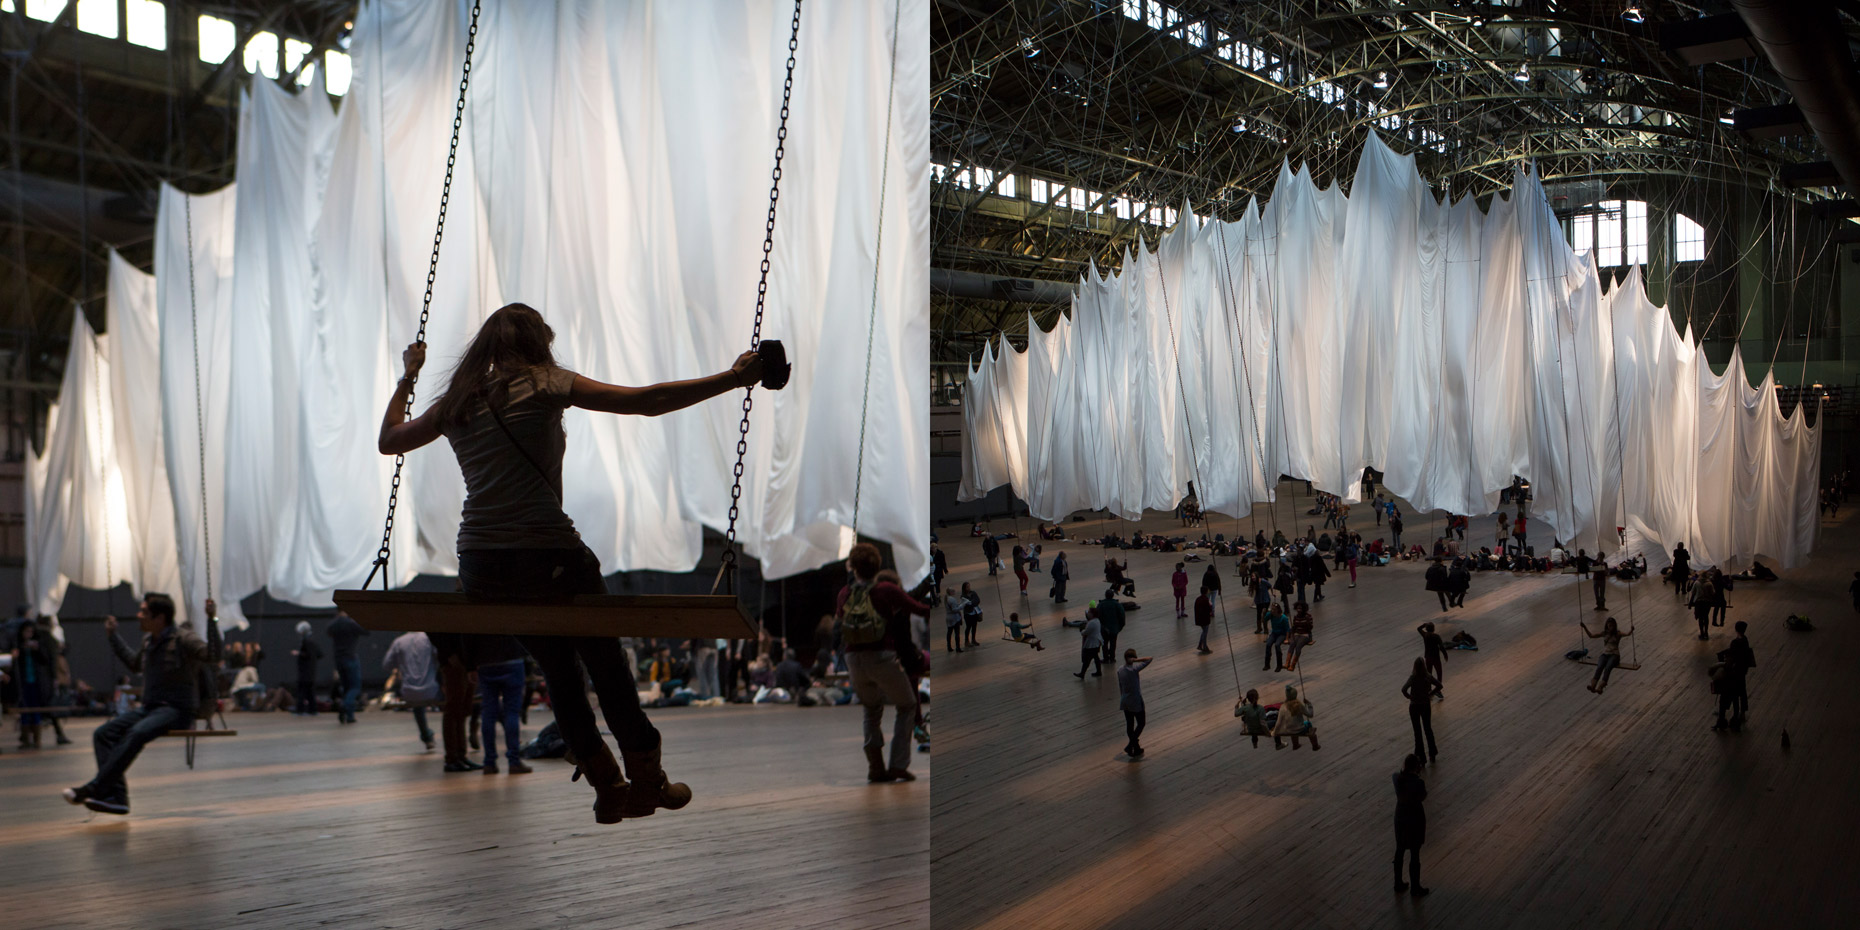 Ann-Hamilton-The-Event-Of-A-Thread-art-installation-Poul-Ober-Photography